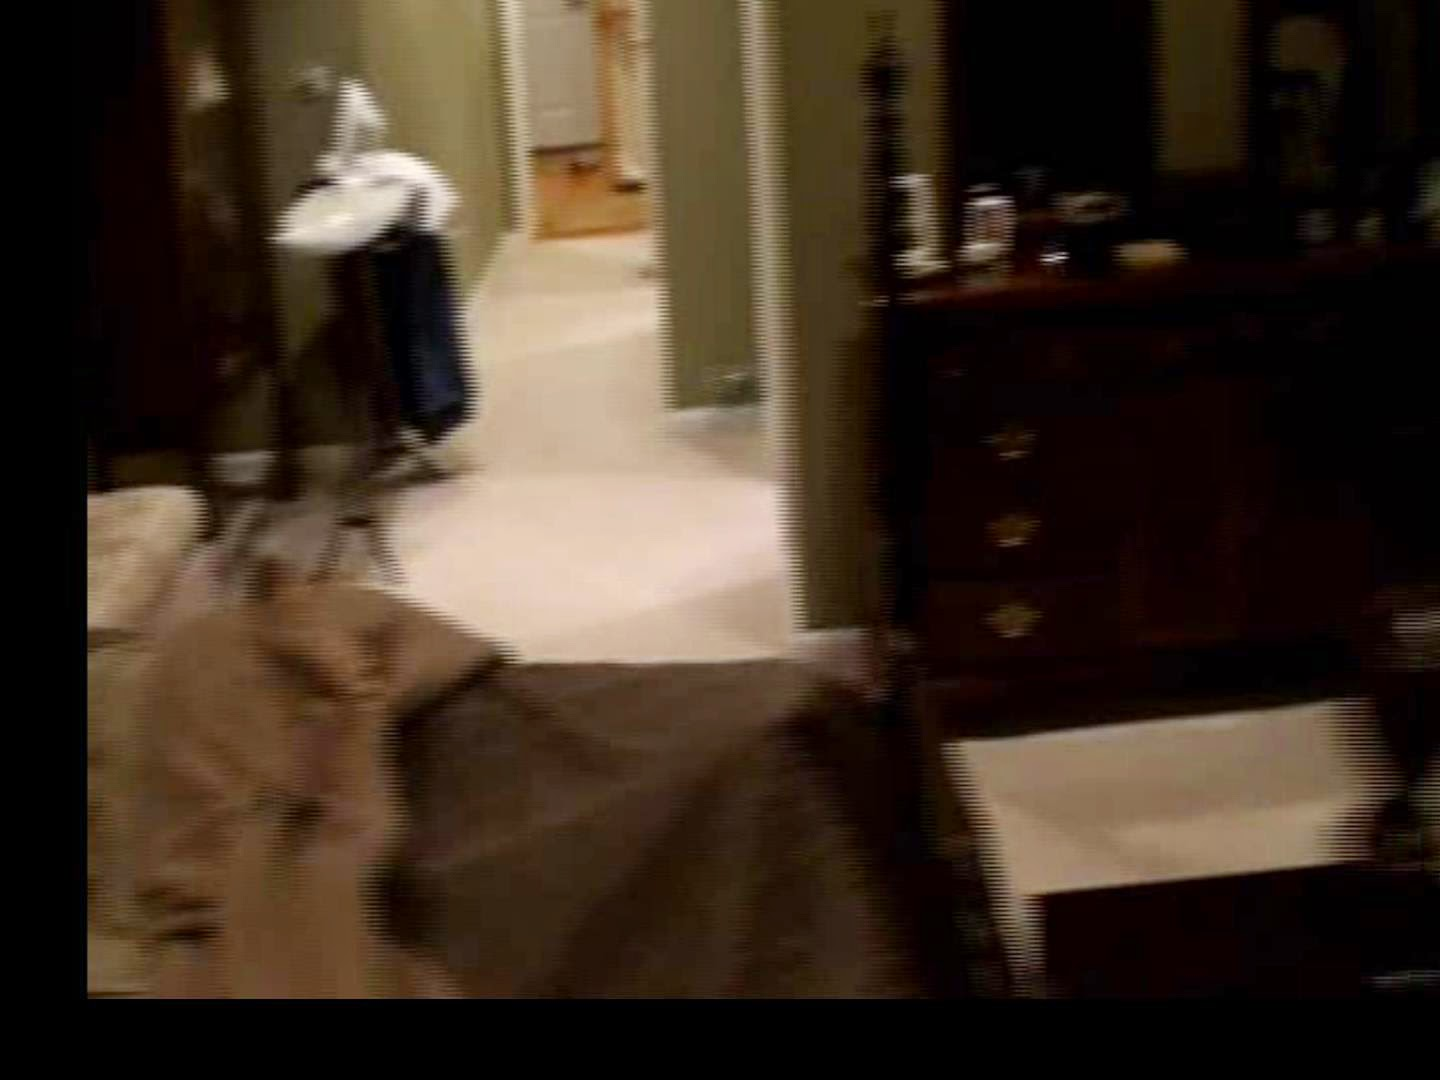 sandy hook facts research sandy hook shooting photo essay cap and the one below clearly shows the outline of the feet of nancy lanza under her blankets as she lay deceased in her bed at home she was shot